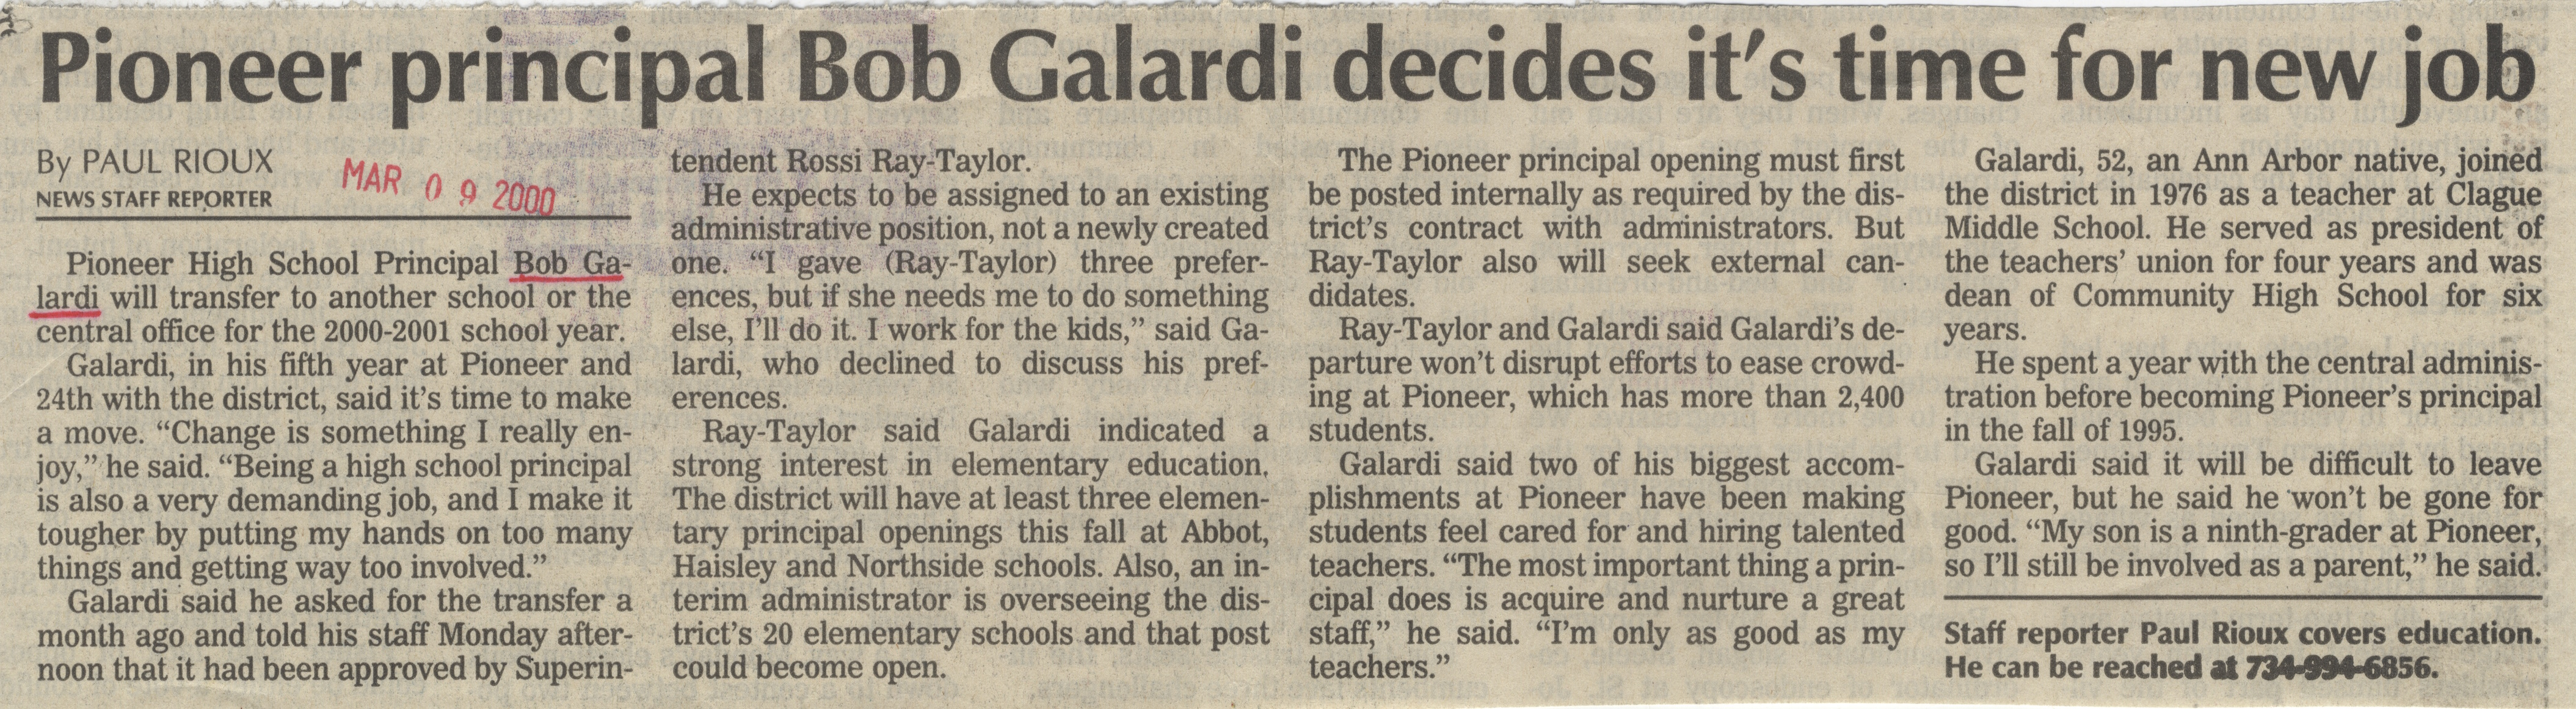 Pioneer Principal Bob Galardi Decides It's Time For New Job image